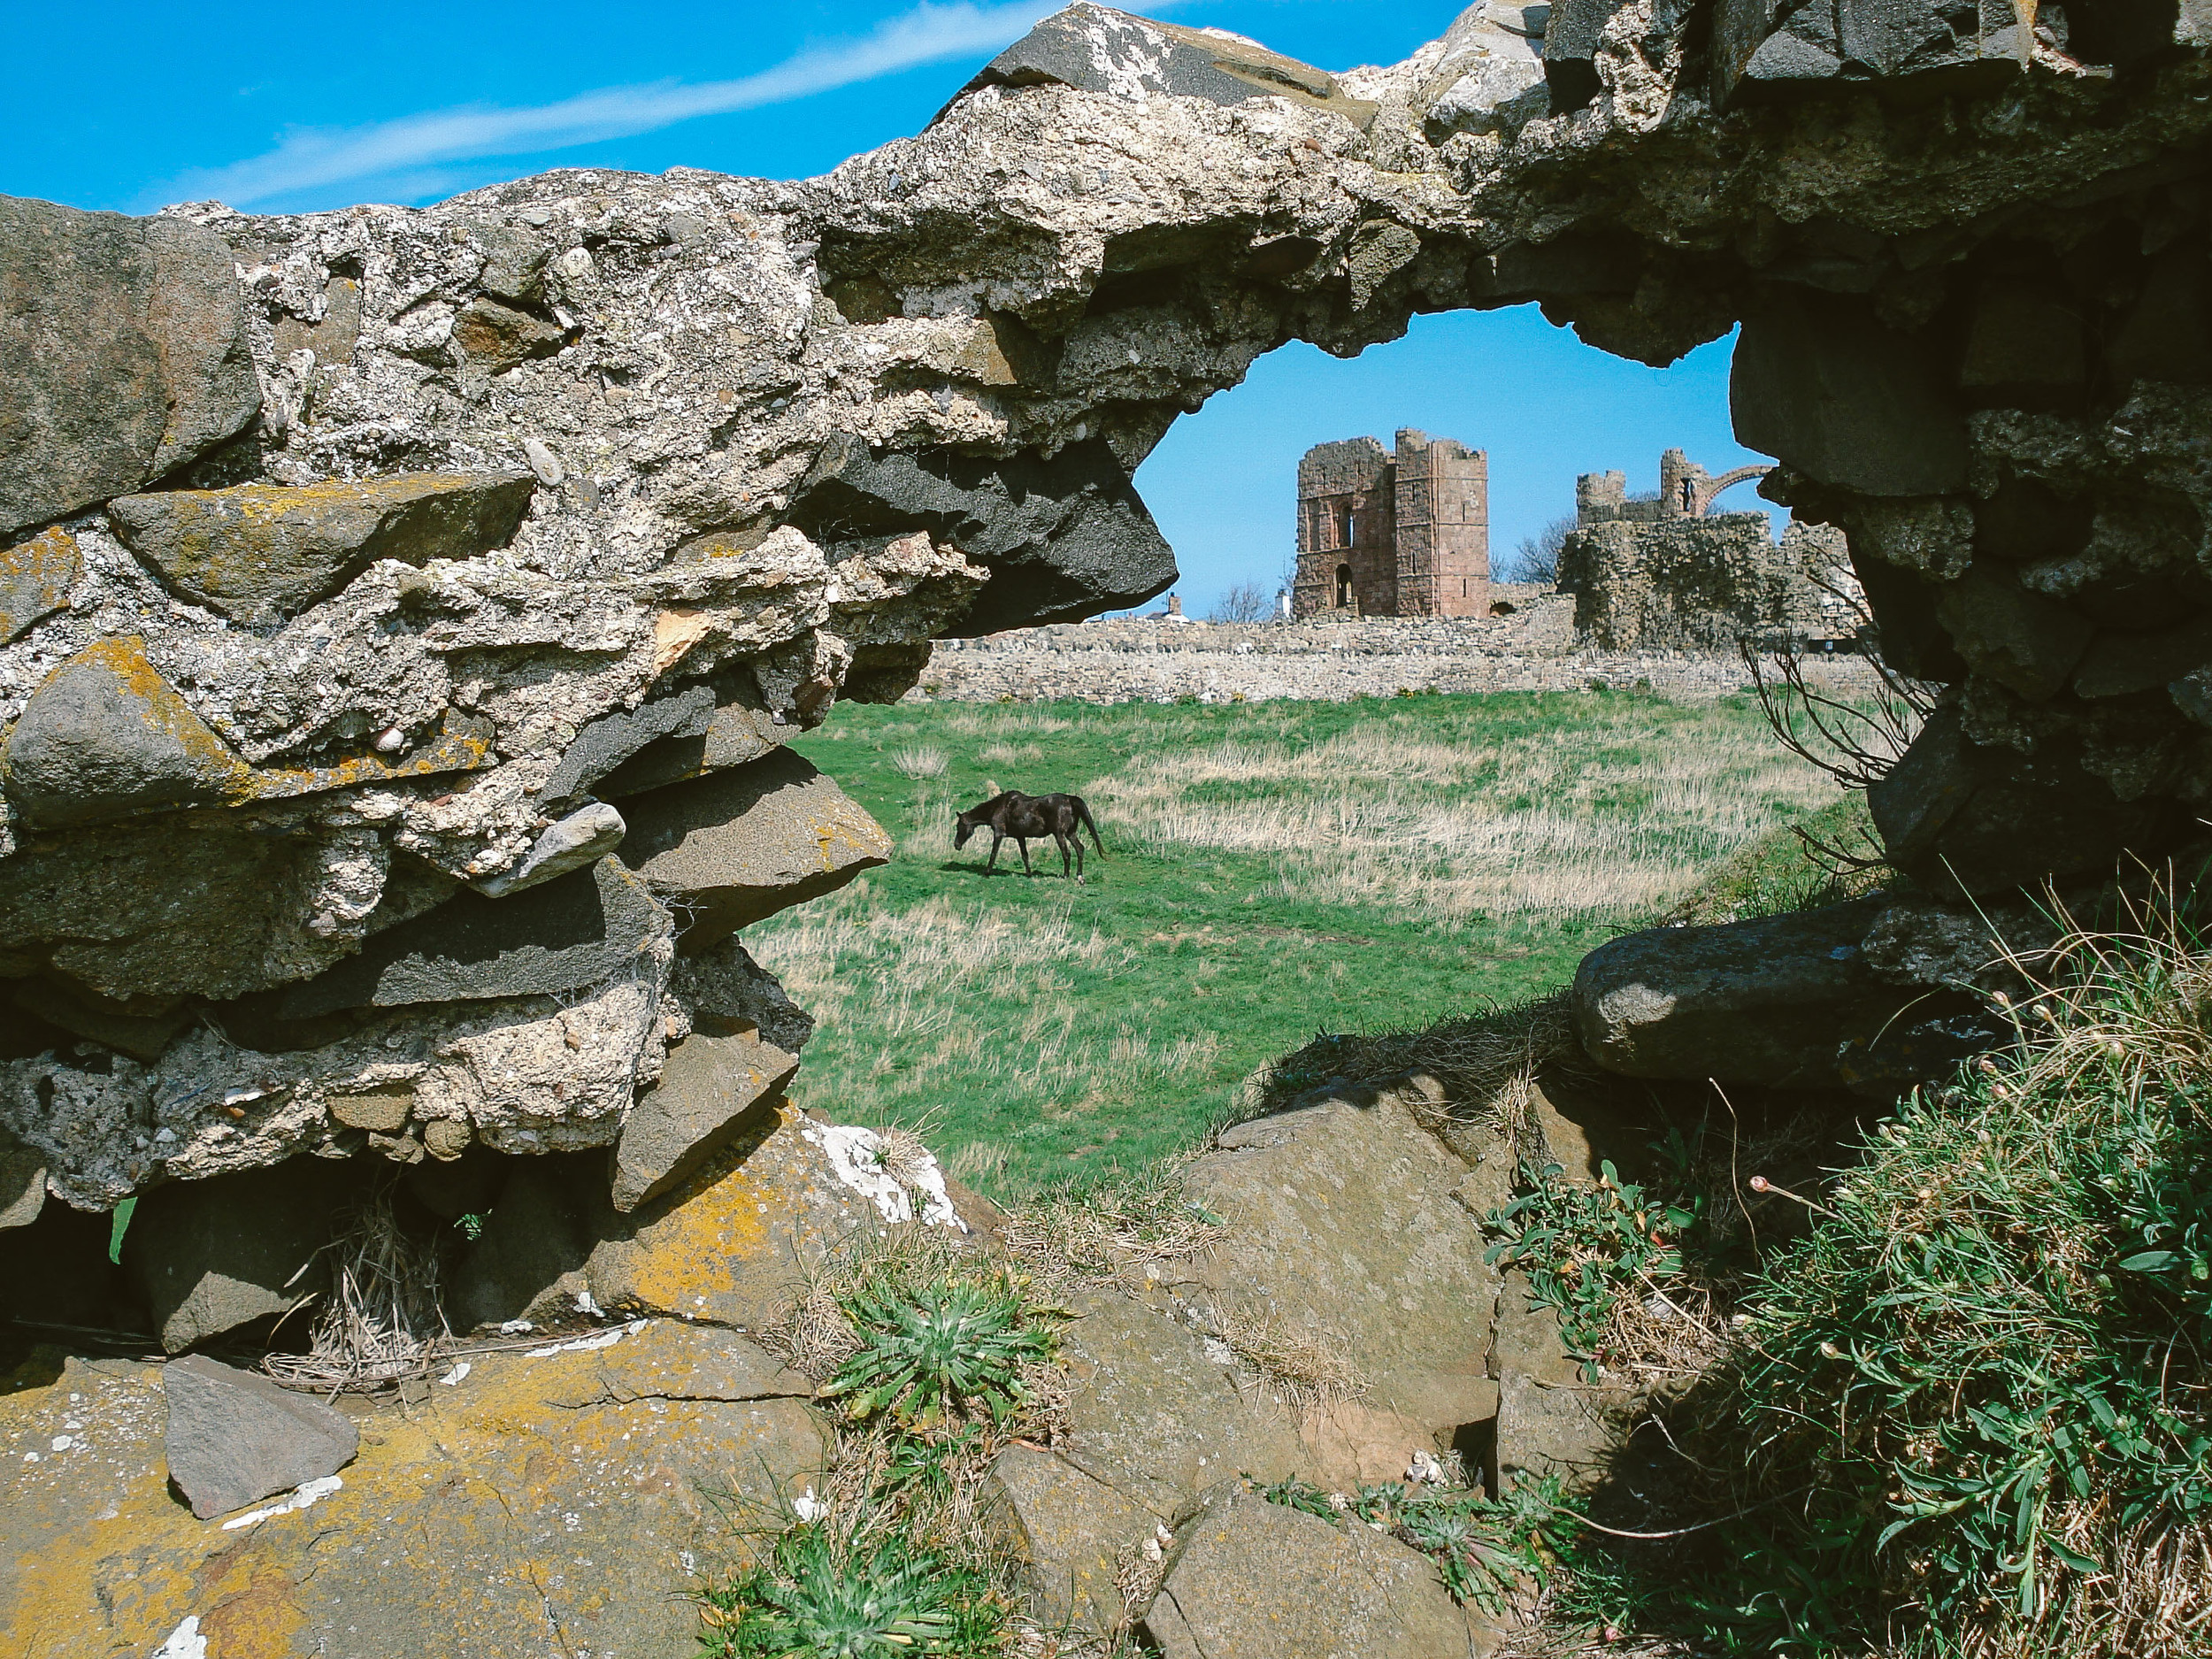 Holy Island is a great location for a history or nature lover to get married